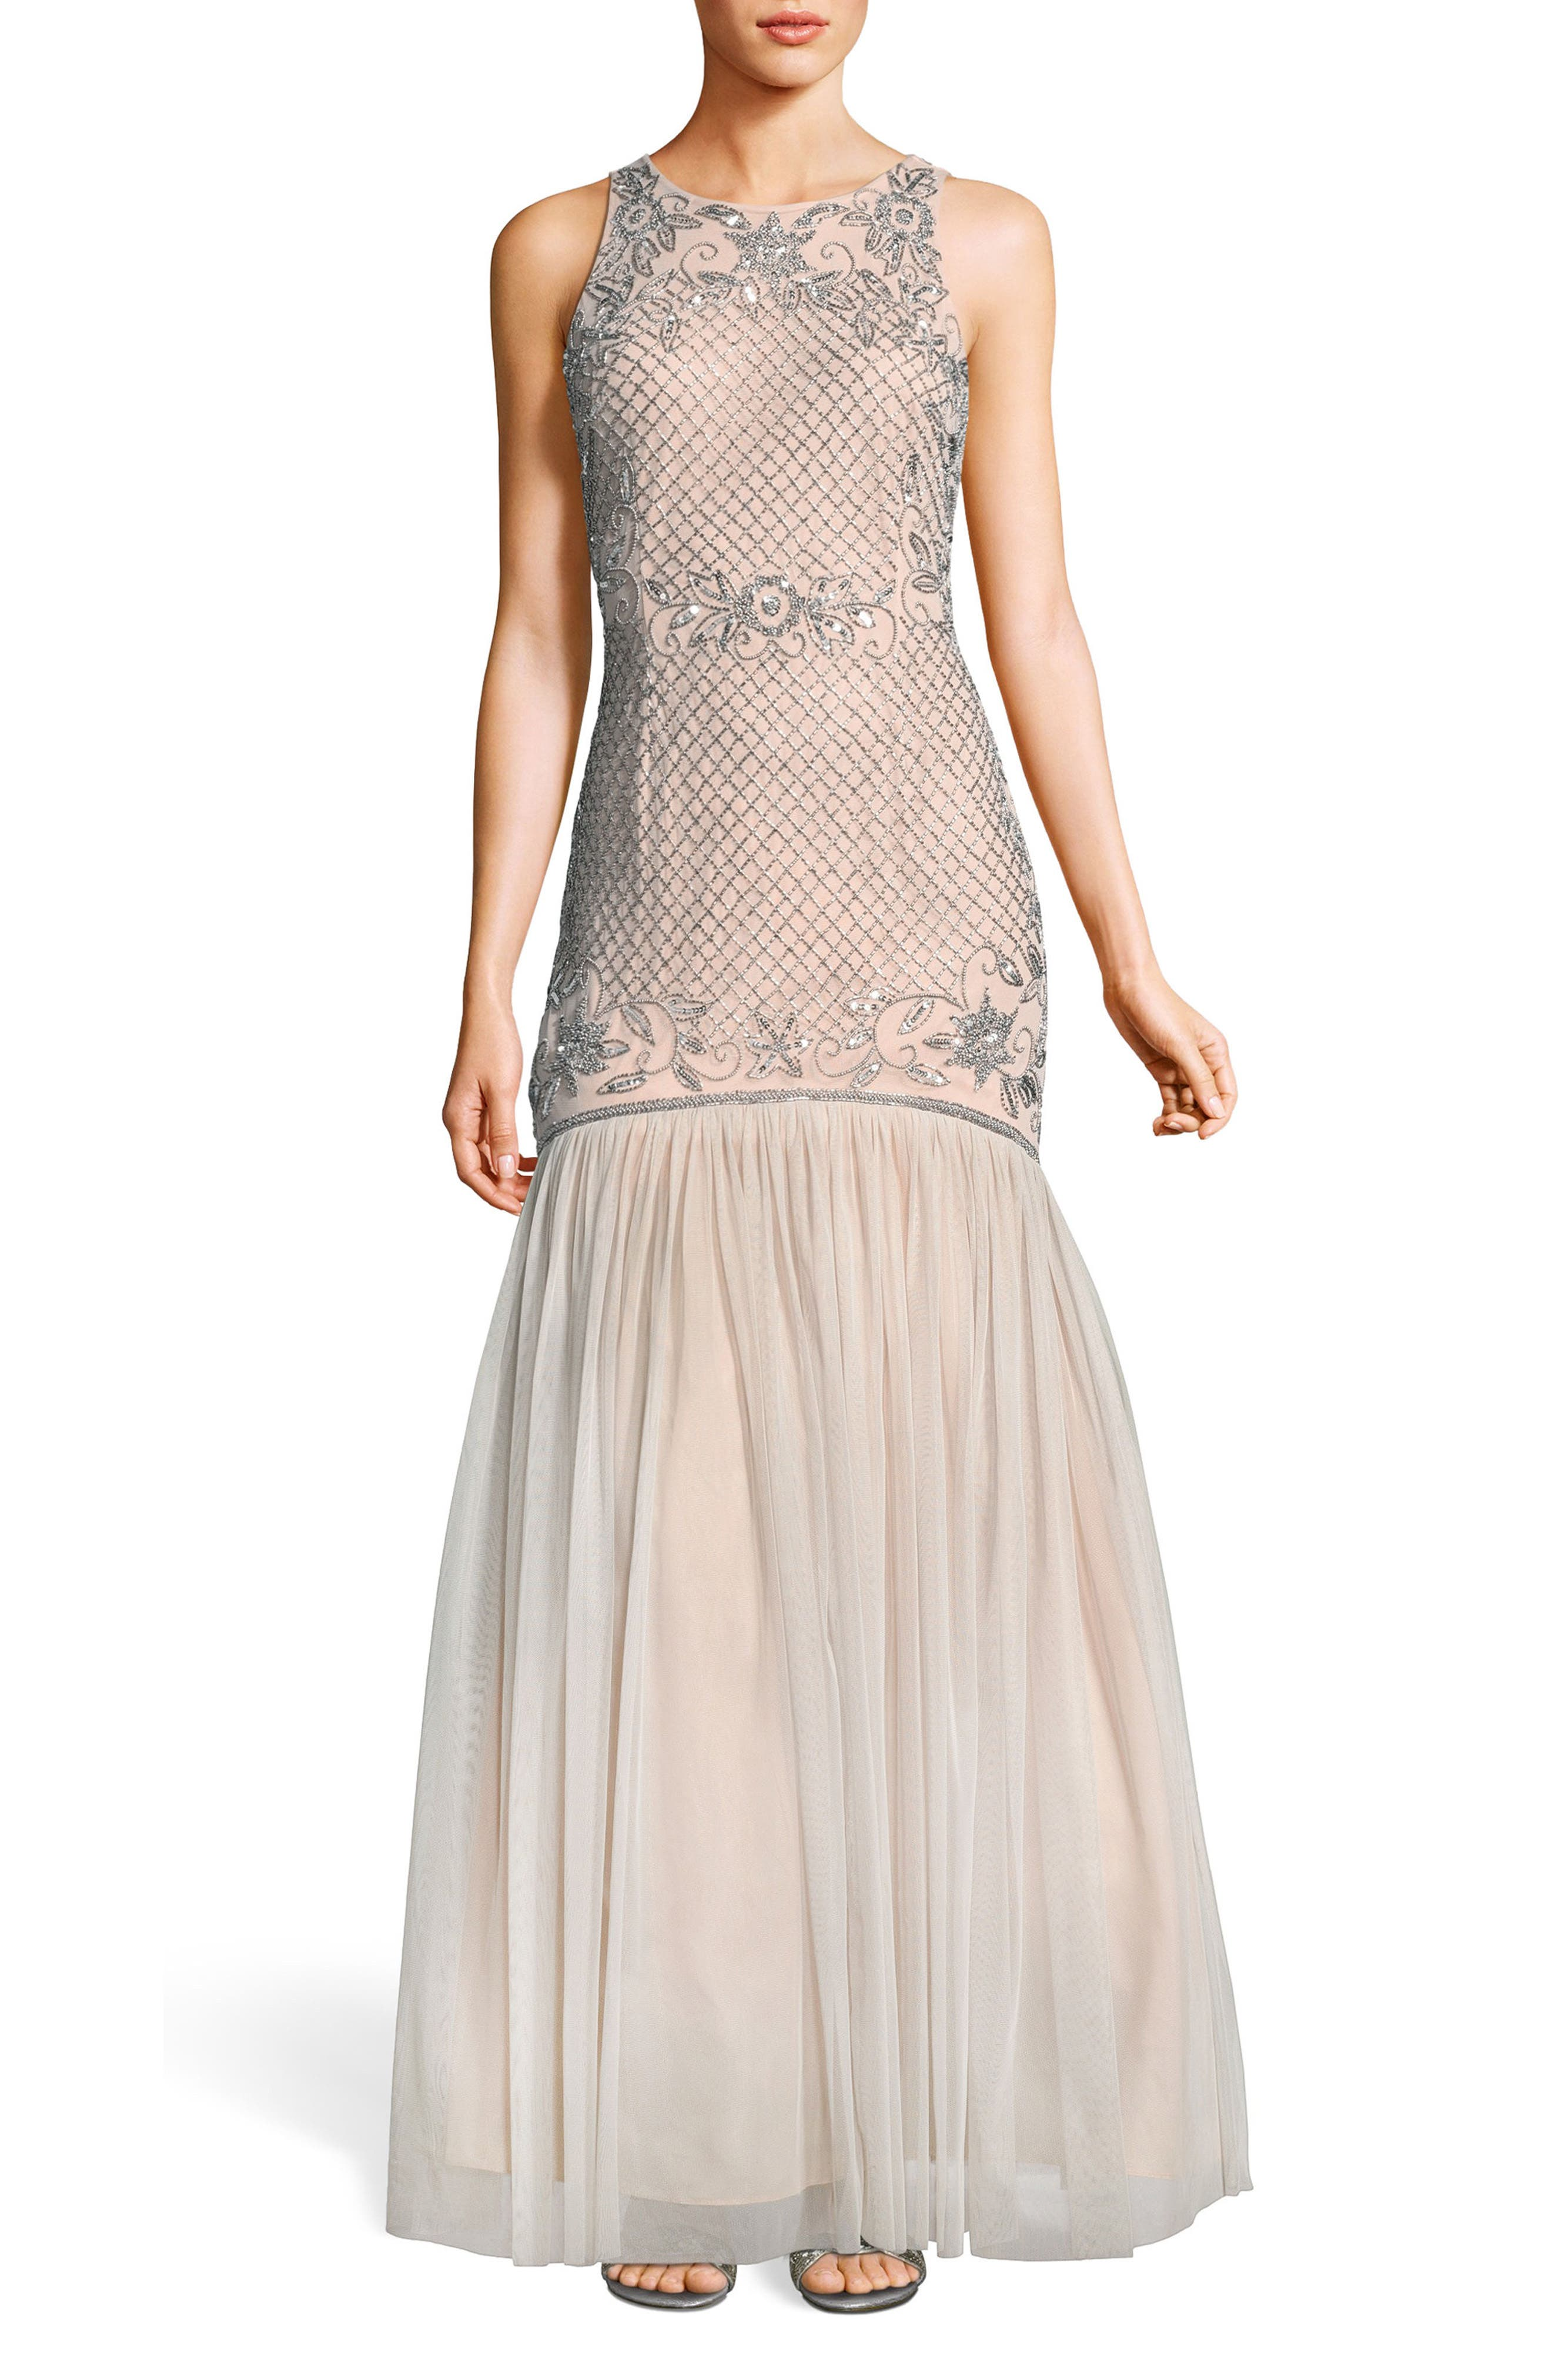 Alternate Image 1 Selected - Adrianna Papell Beaded Tulle Trumpet Gown